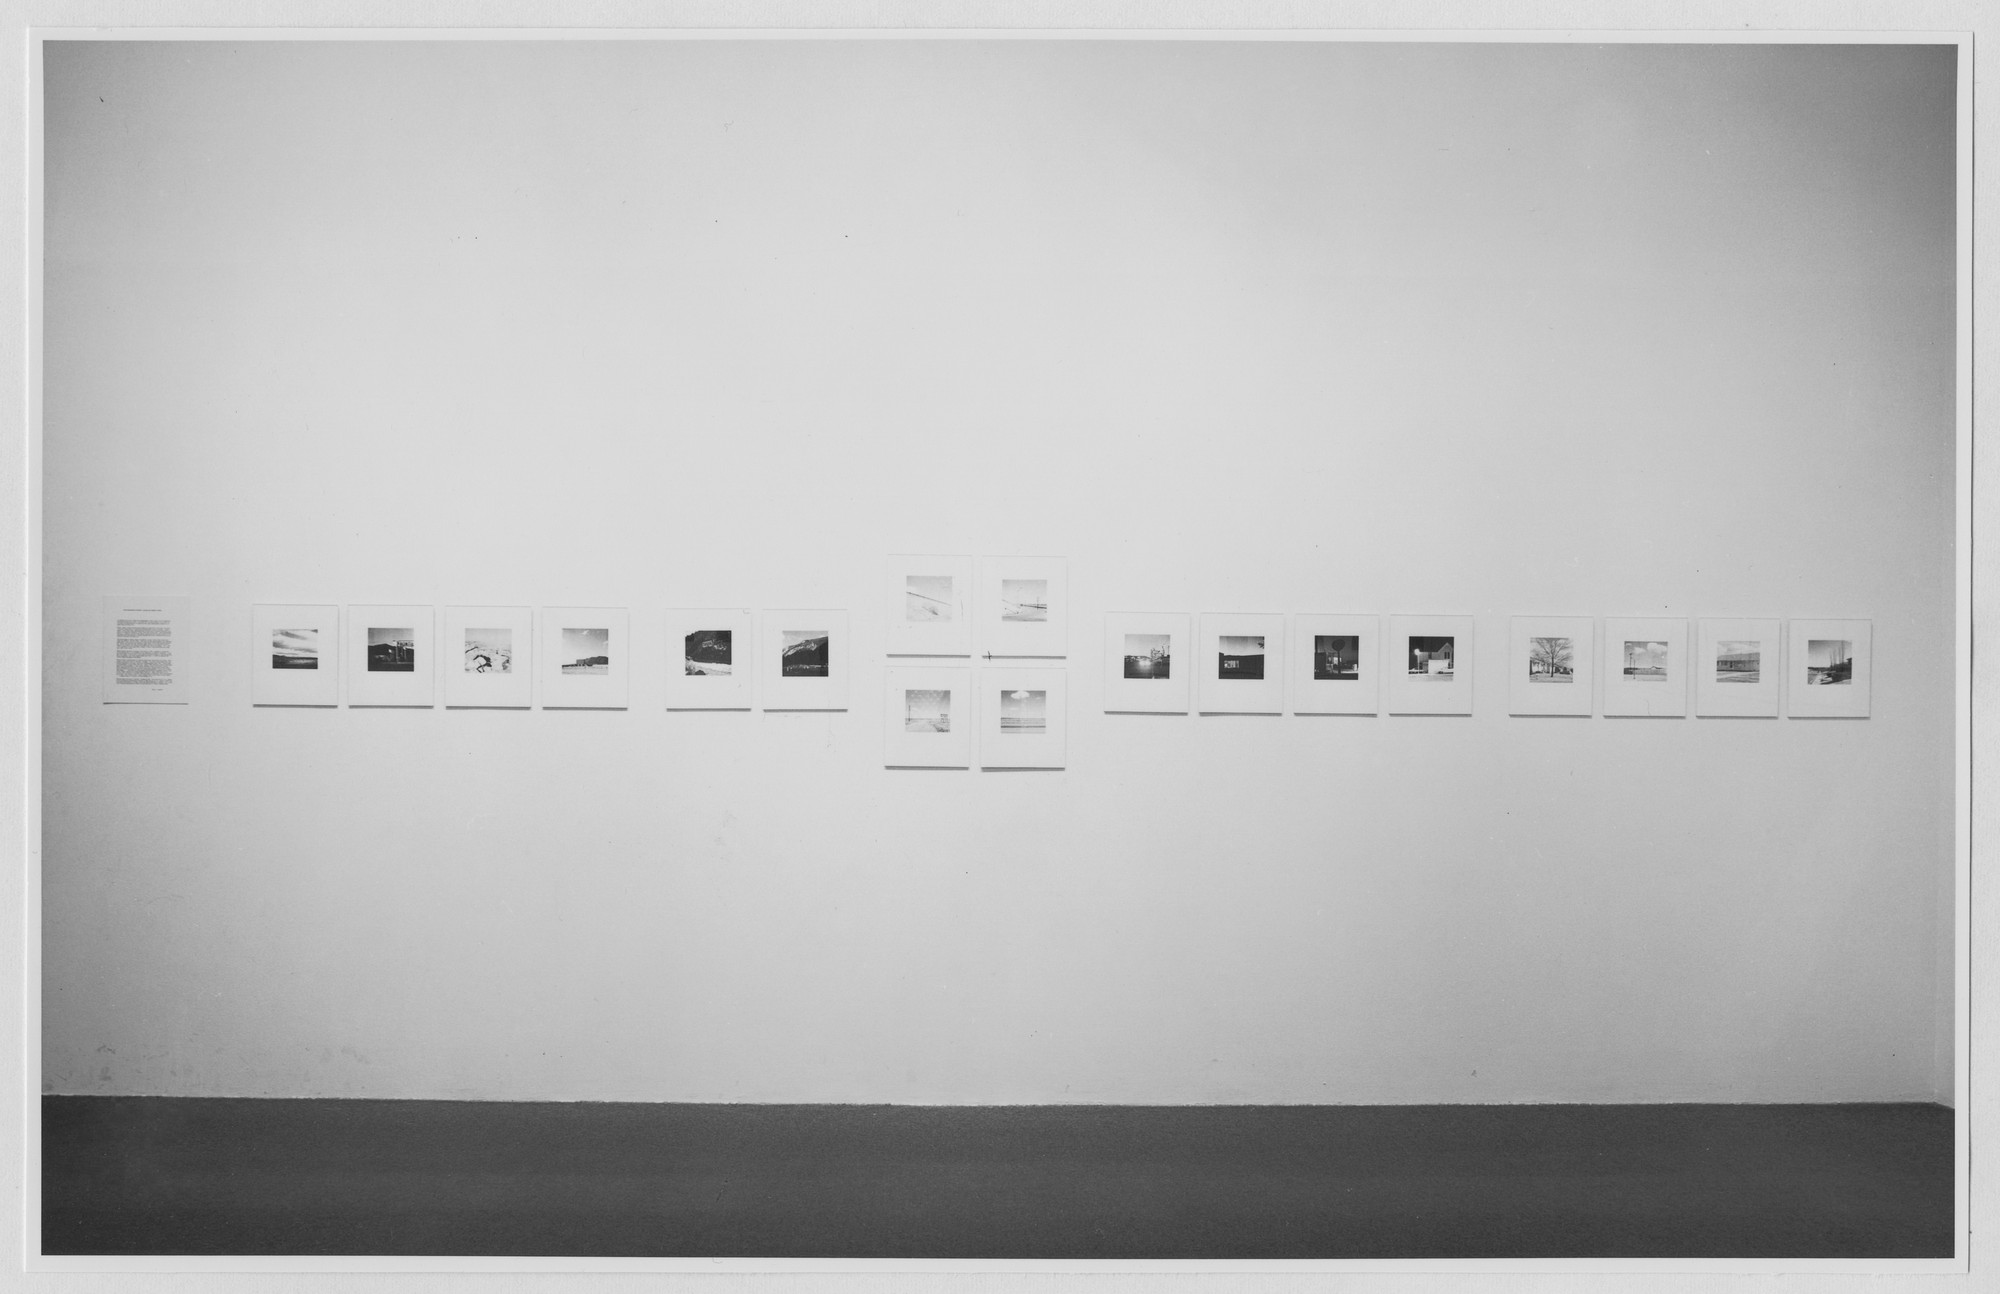 "Installation view of the exhibition, ""Photographs:  Robert Adams and Emmitt Gowin."" December 16, 1971–February 29, 1972. Photographic Archive. The Museum of Modern Art Archives, New York. IN987.1. Photograph by James Mathews."